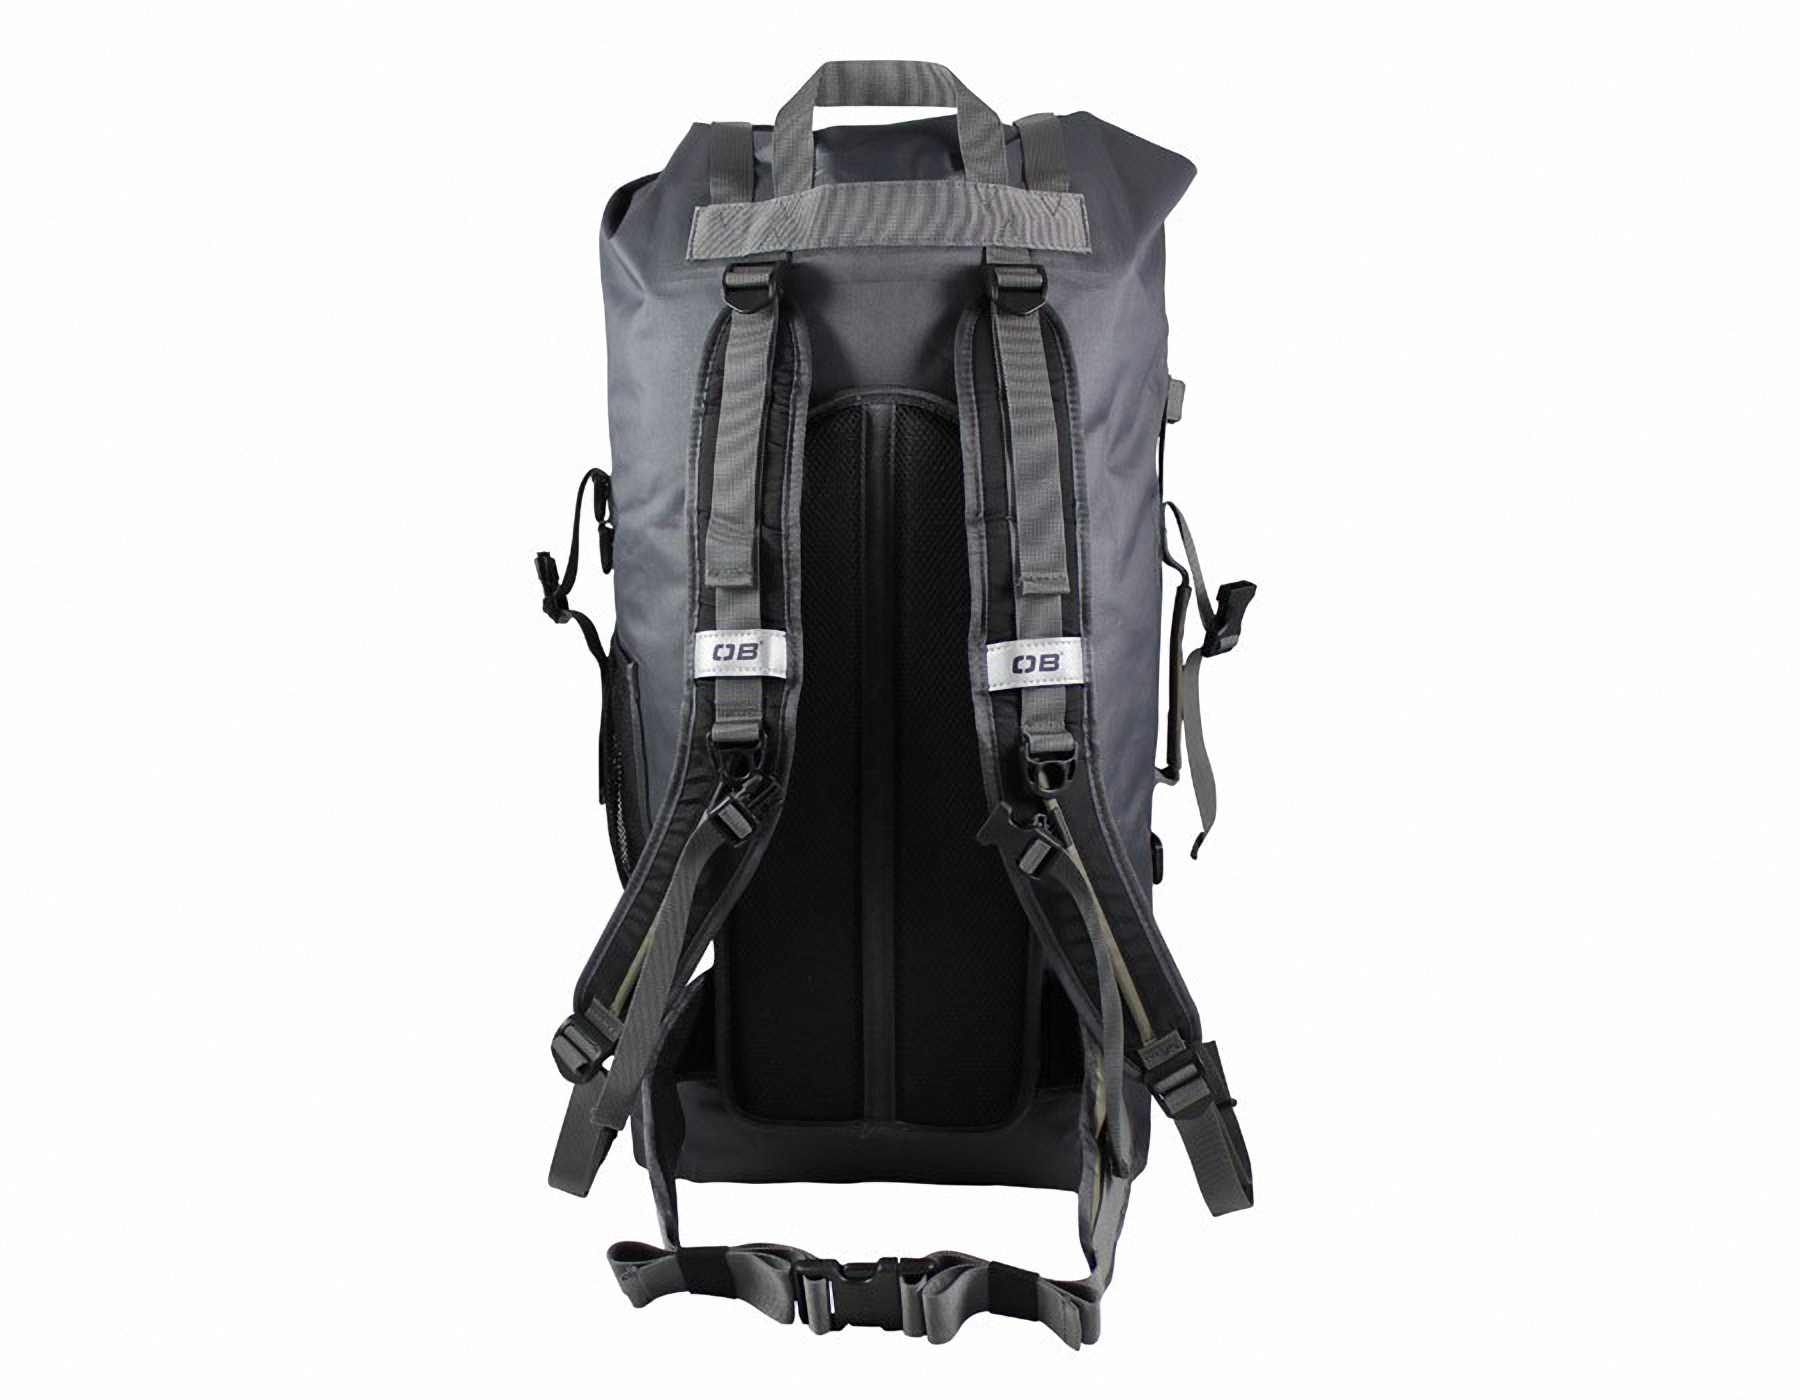 Водонепроницаемый рюкзак OverBoard OB1119G - Ultra-light Waterproof Backpack - 50L. Фото 7